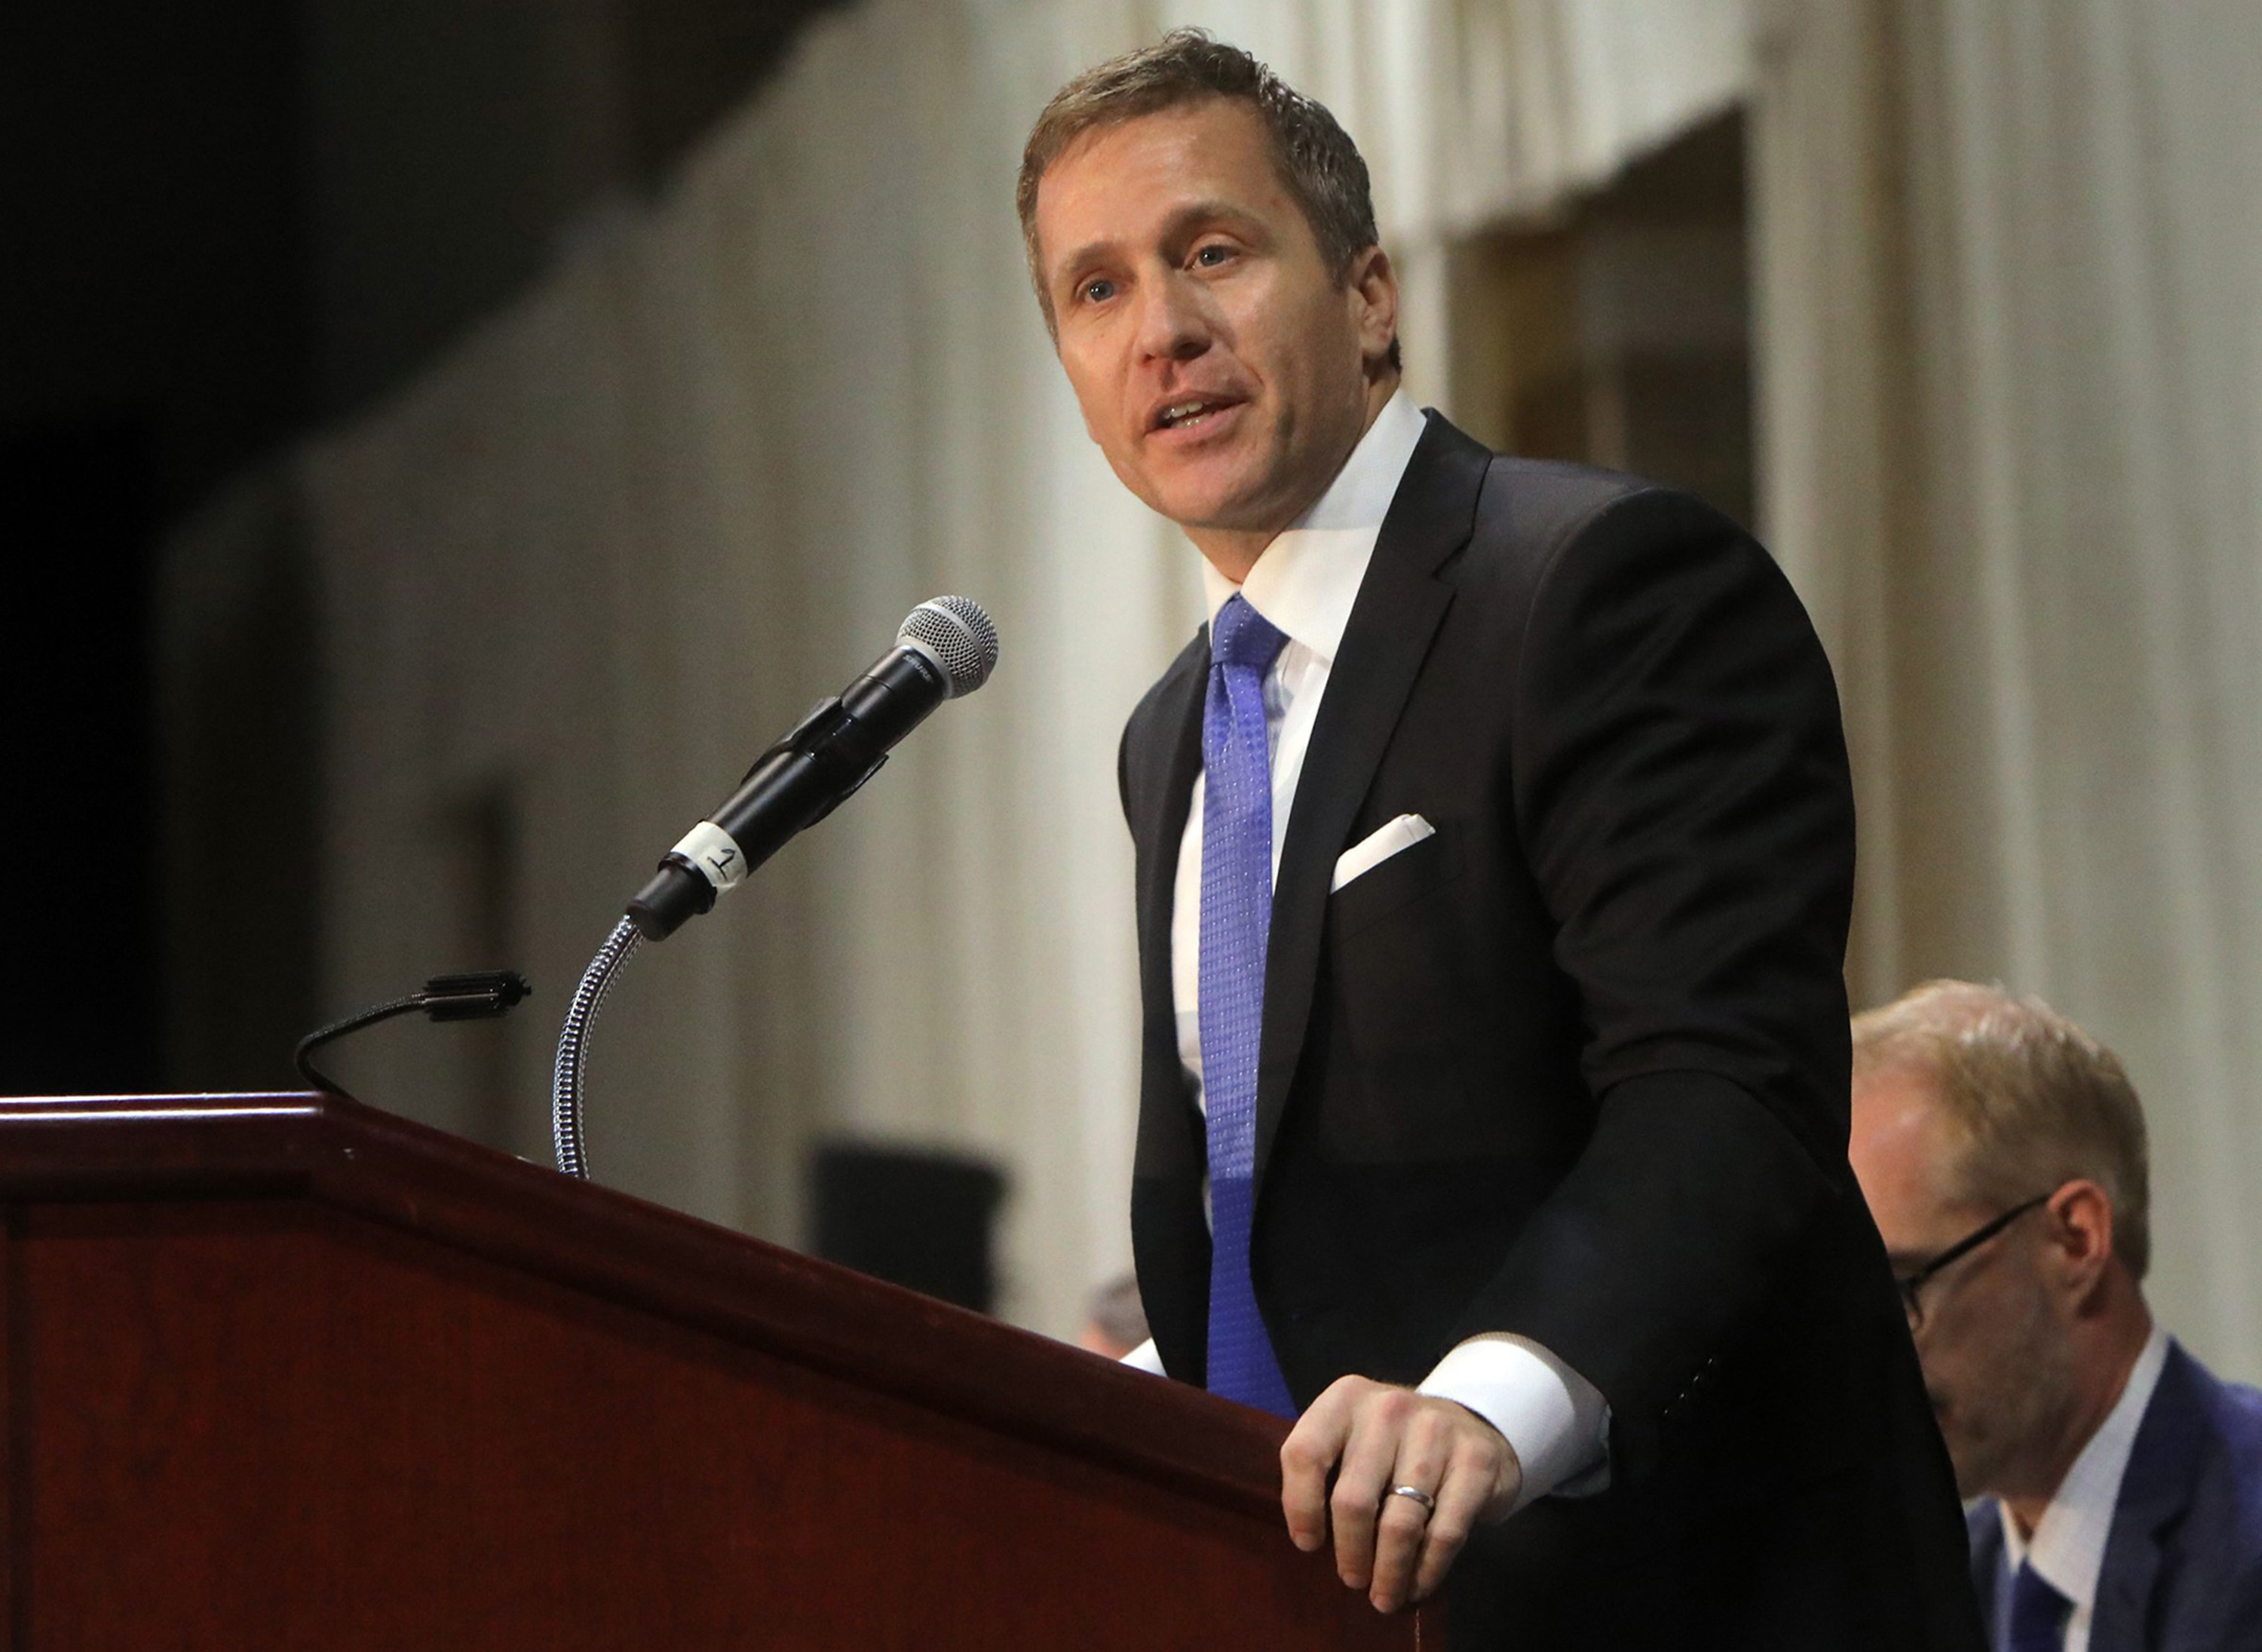 Missouri Republicans worry governor will 'burn it all down' and threaten AG's chances in Senate race